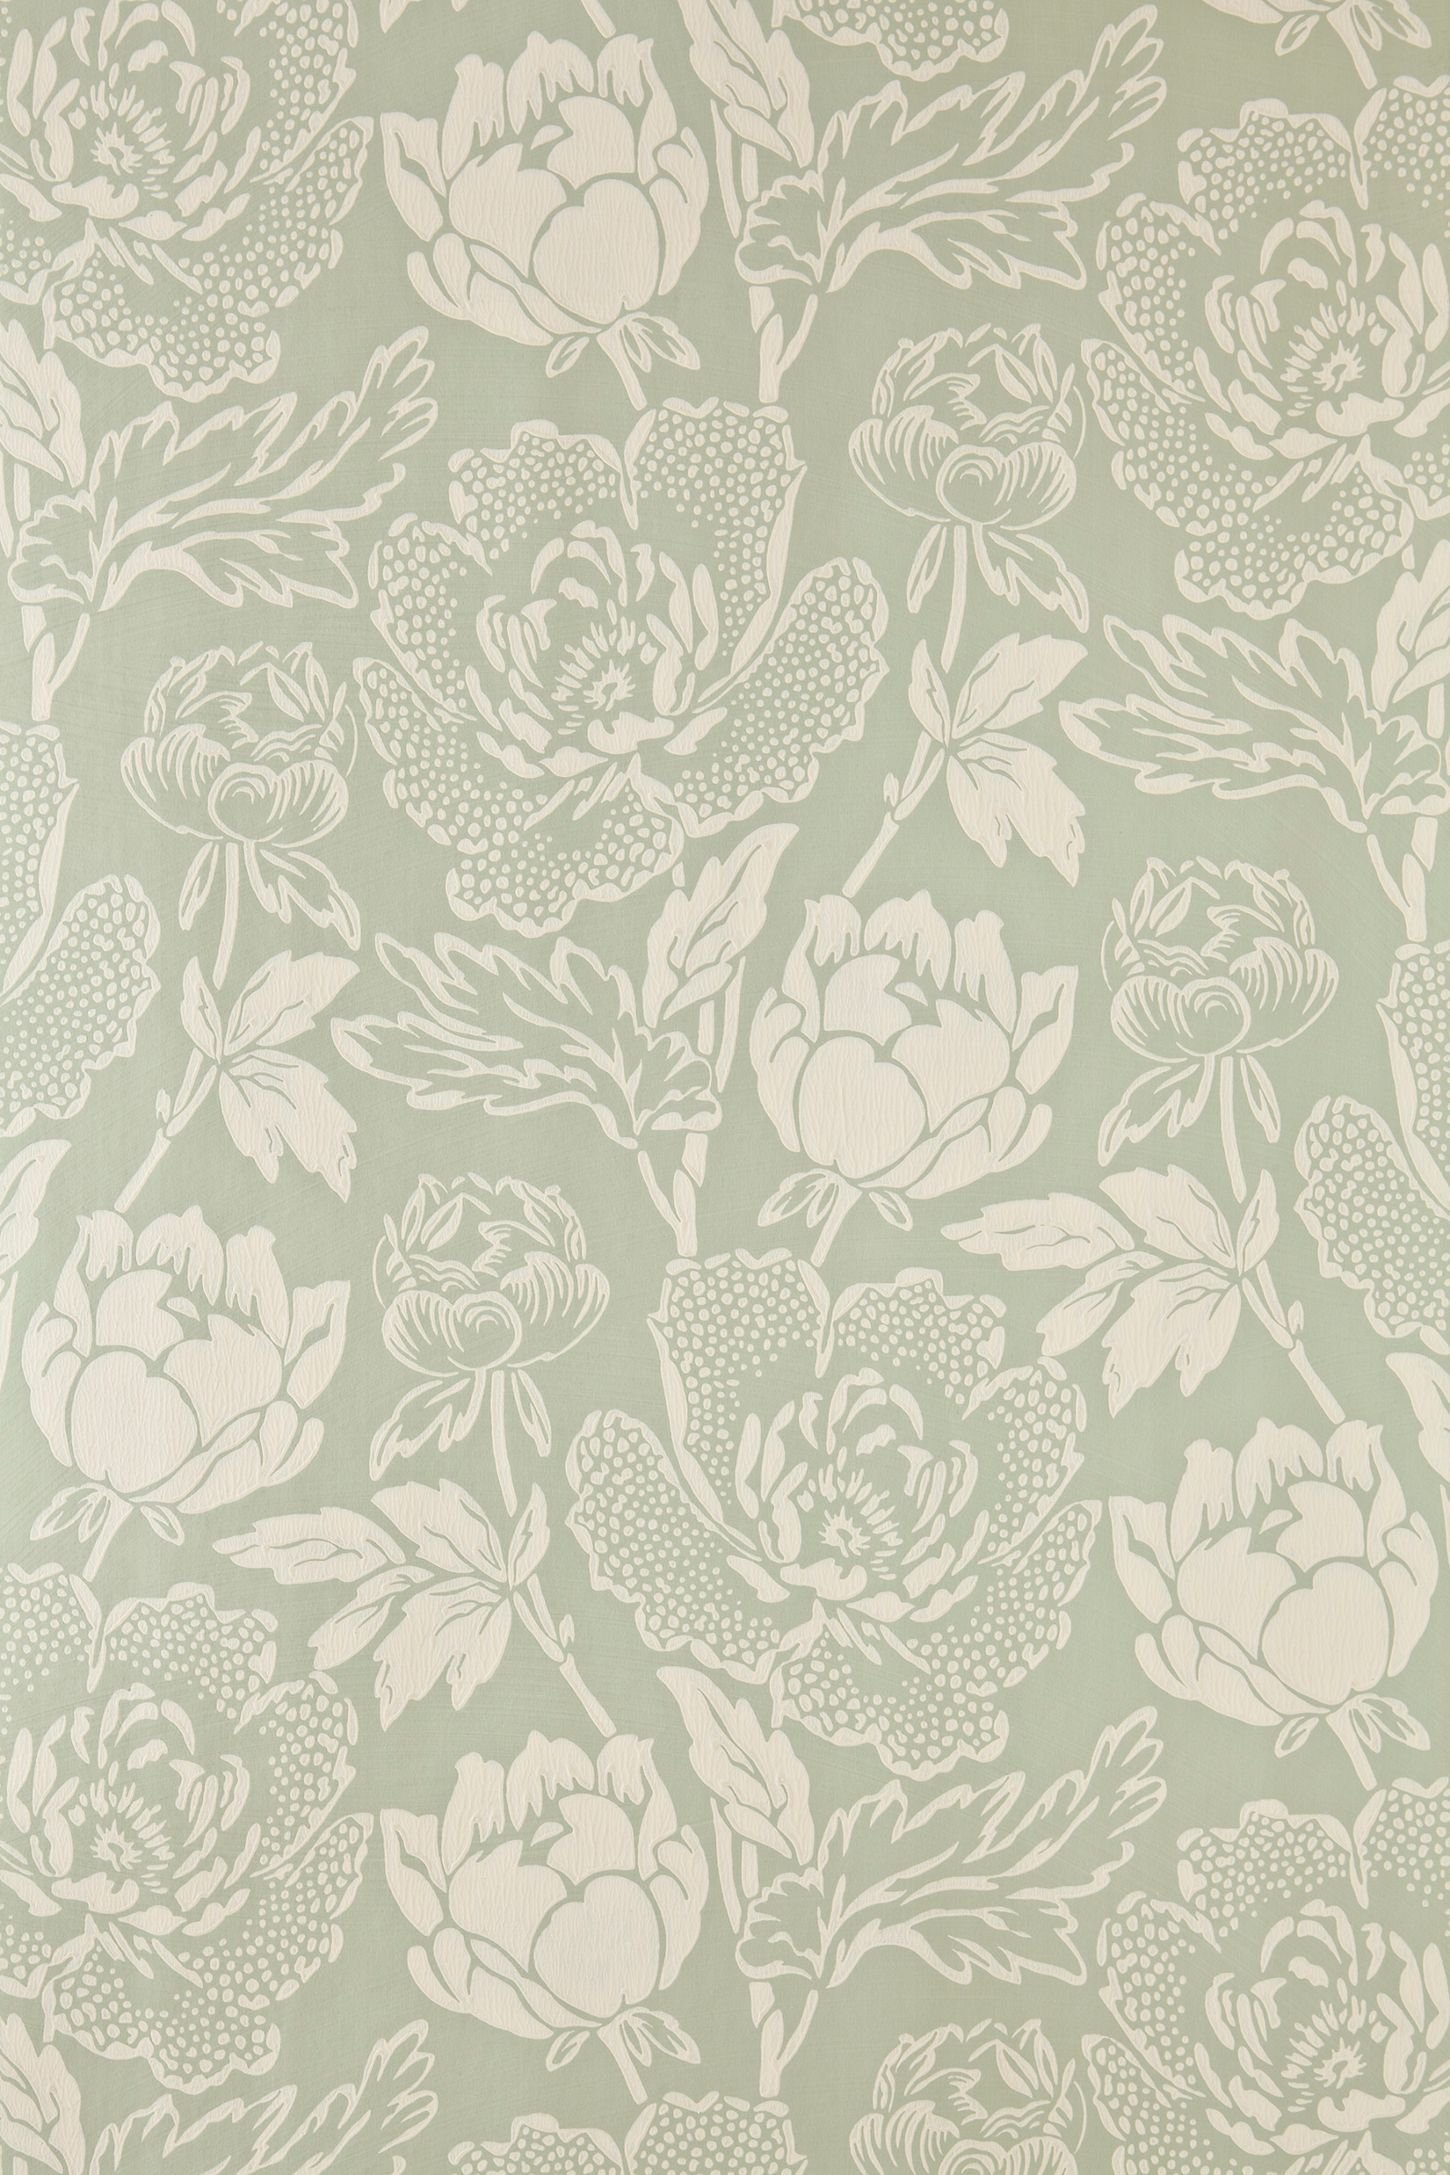 Farrow Ball Peony Wallpaper Peony Wallpaper Green Wallpaper